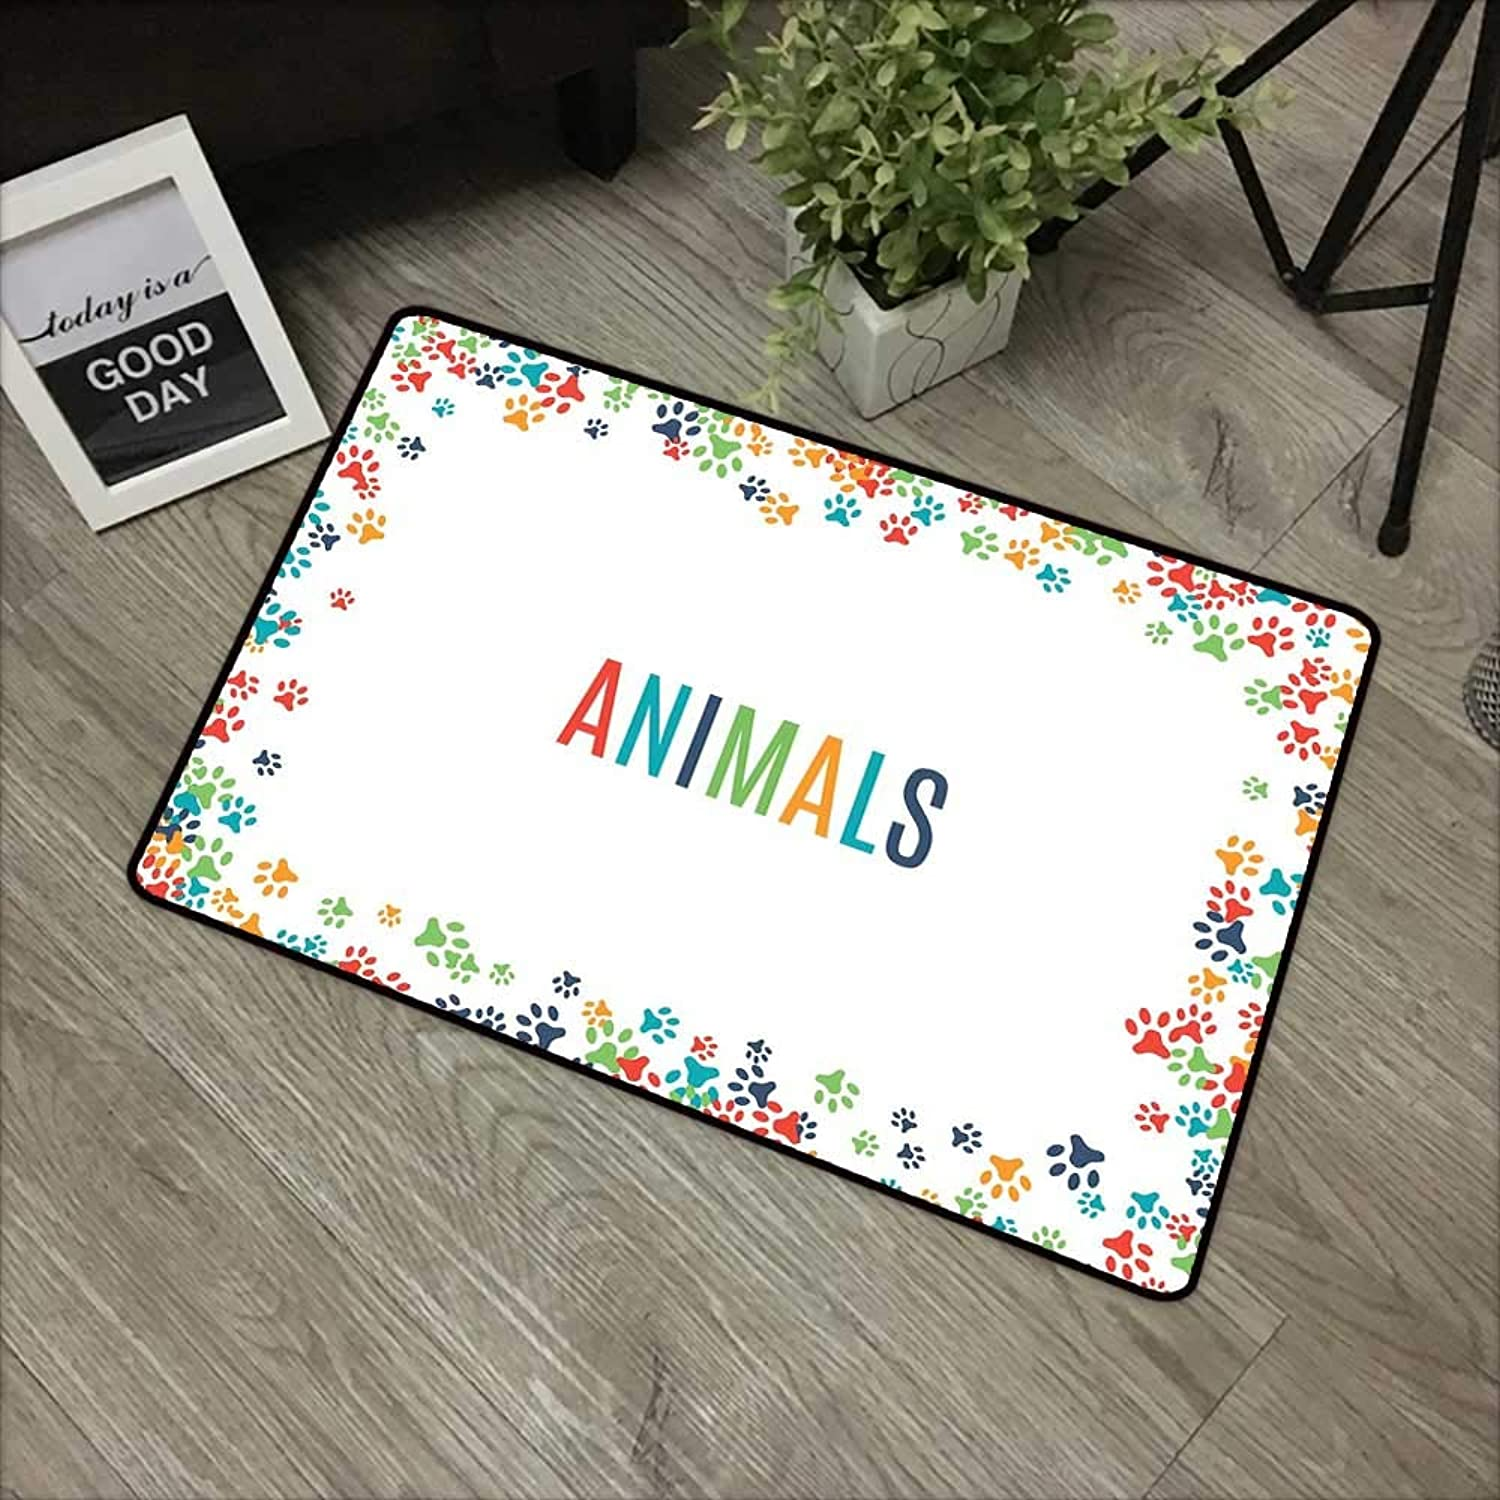 Pool Anti-Slip Door mat W35 x L59 INCH Kids Party,Animal Footprint Ornament Border Cute Paw Trace Cats and Dogs Friendly Pets,Multicolor with Non-Slip Backing Door Mat Carpet